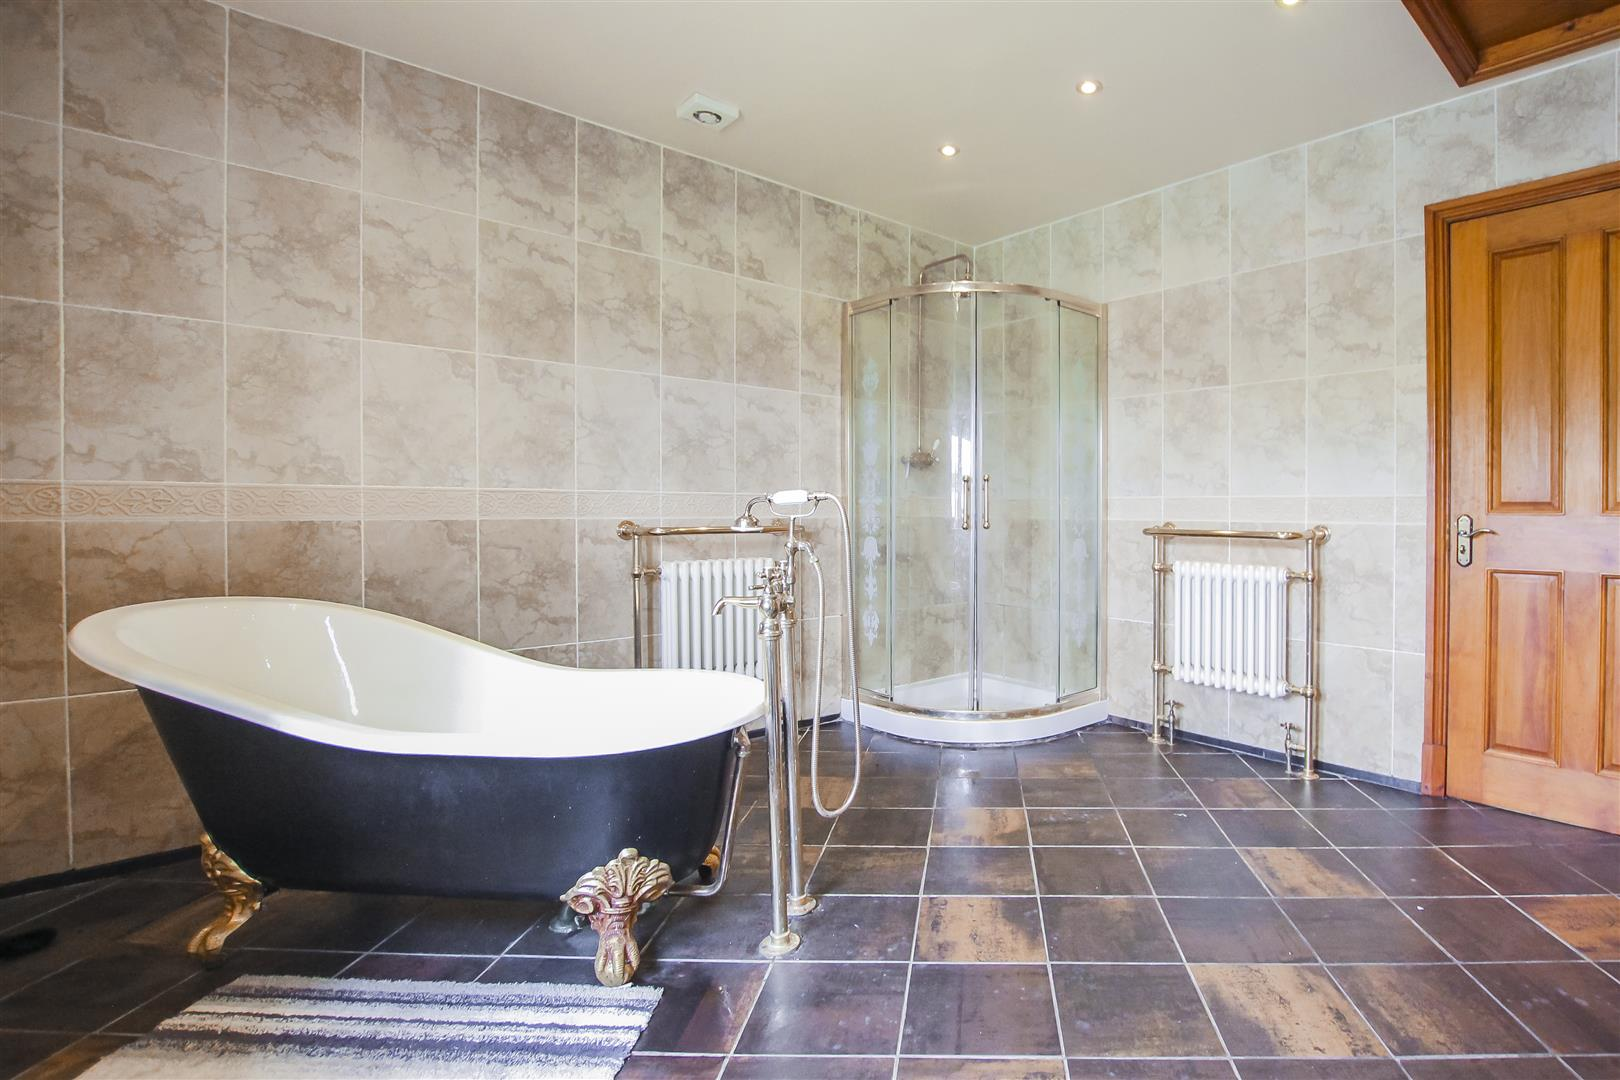 5 Bedroom Barn Conversion For Sale - Image 6